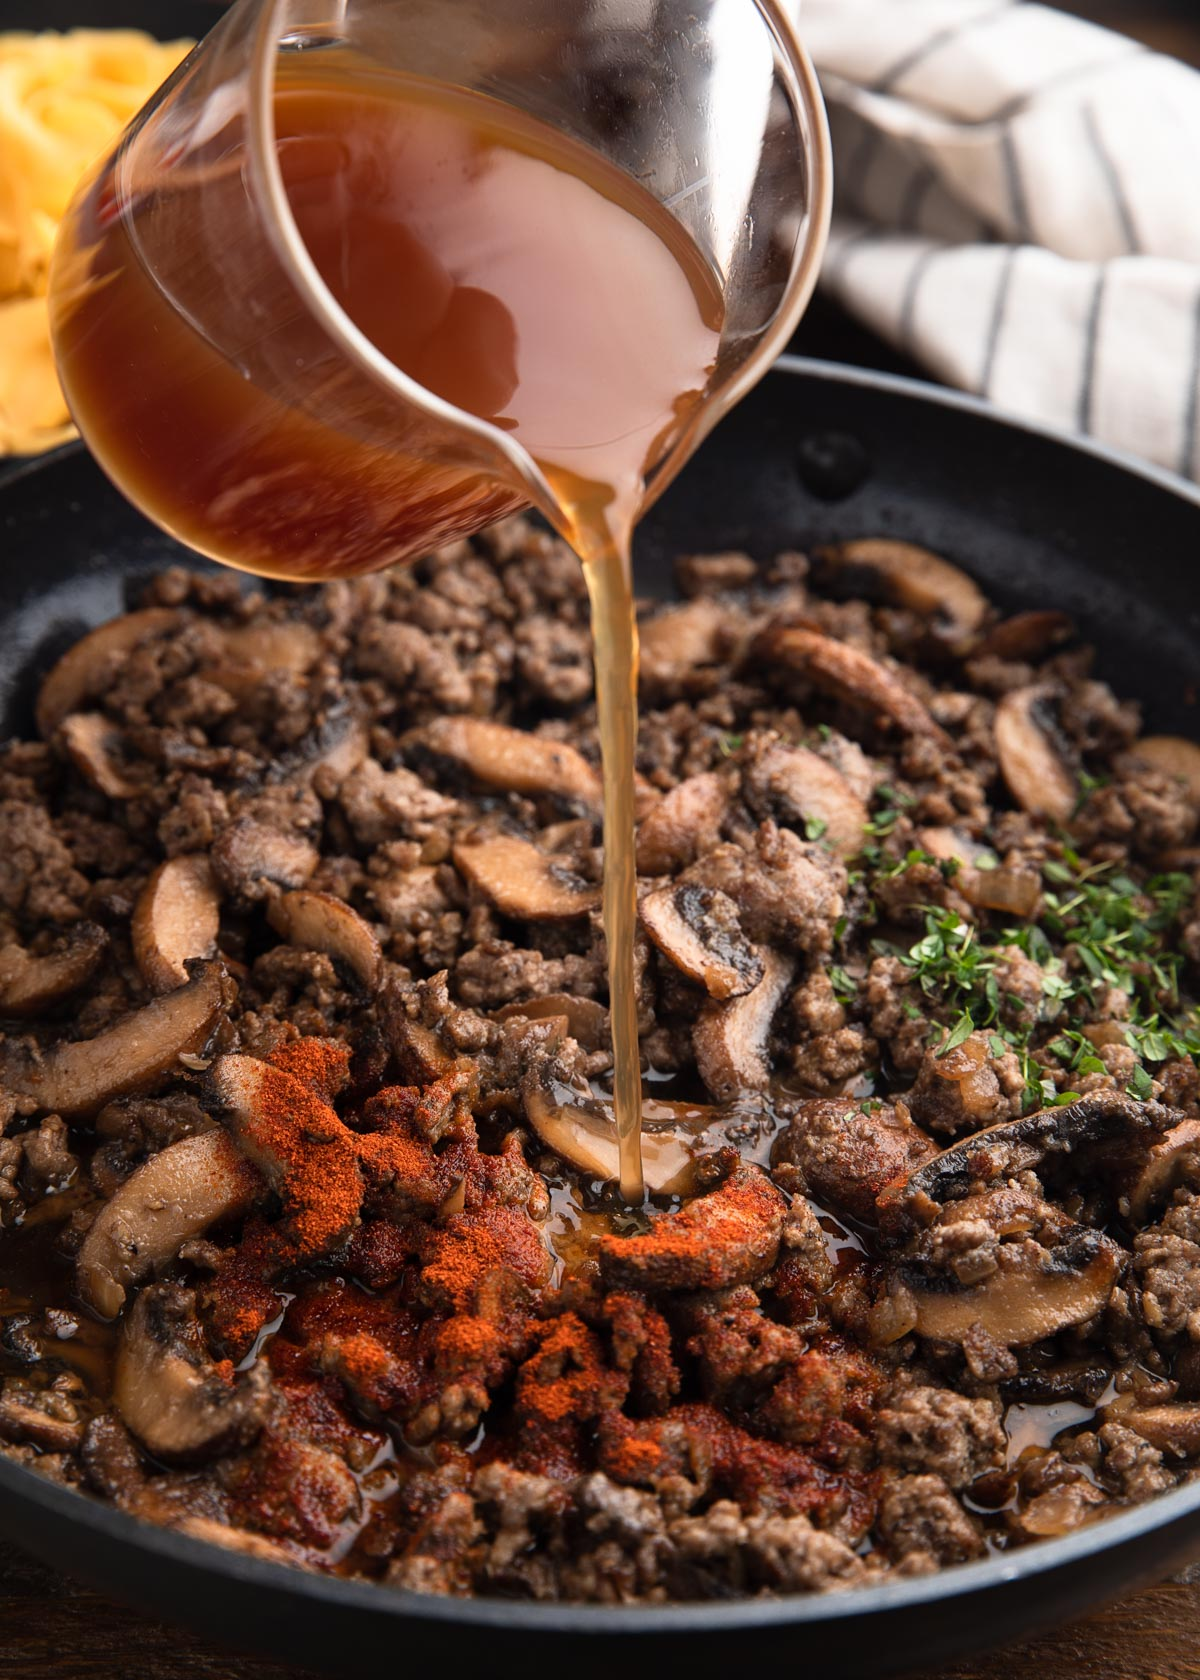 pouring beef broth into a saute pan with ground beef, mushrooms, paprika, and herbs